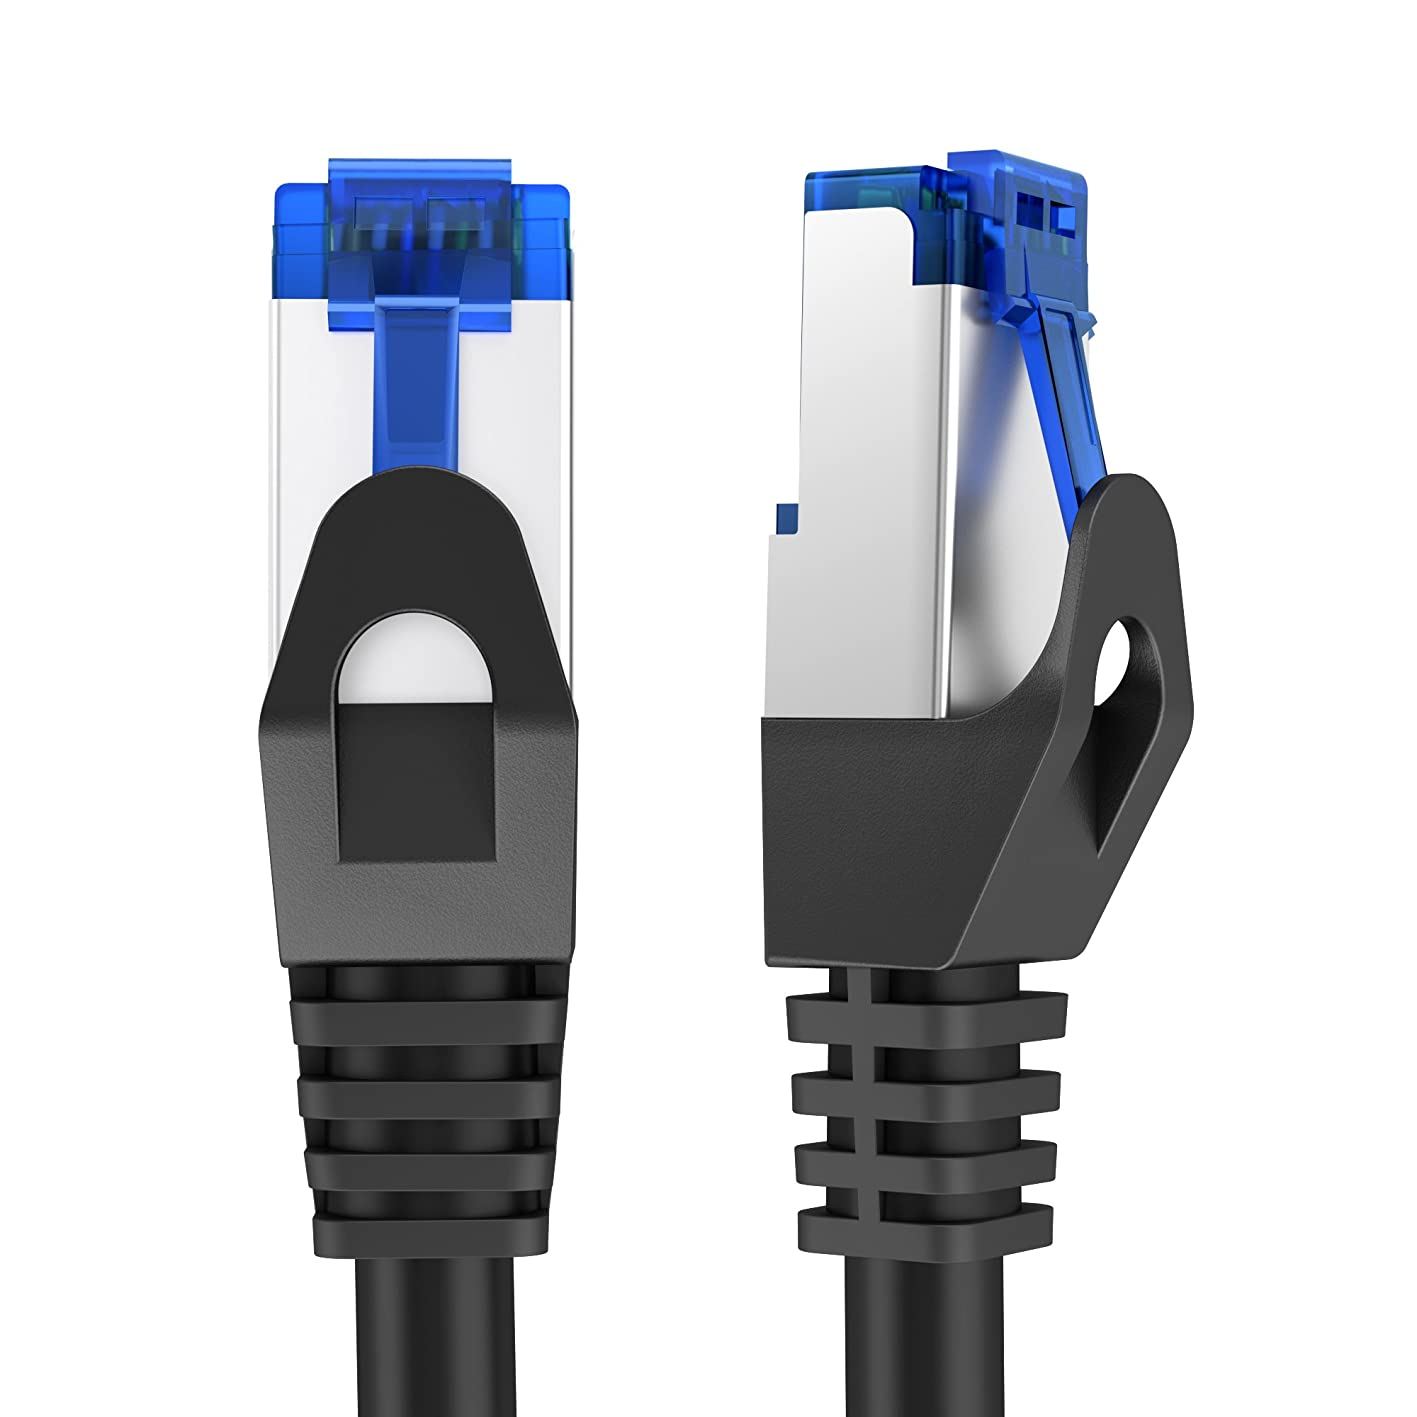 KabelDirekt PRO Series (25ft) Cat6 Gigabit High-Speed Ethernet Cable with Snagless RJ45 Connector - Reliable 1Gbps Internet Cord/Patch Cable with F/UTP Foil Shielding bfewbojuuga601